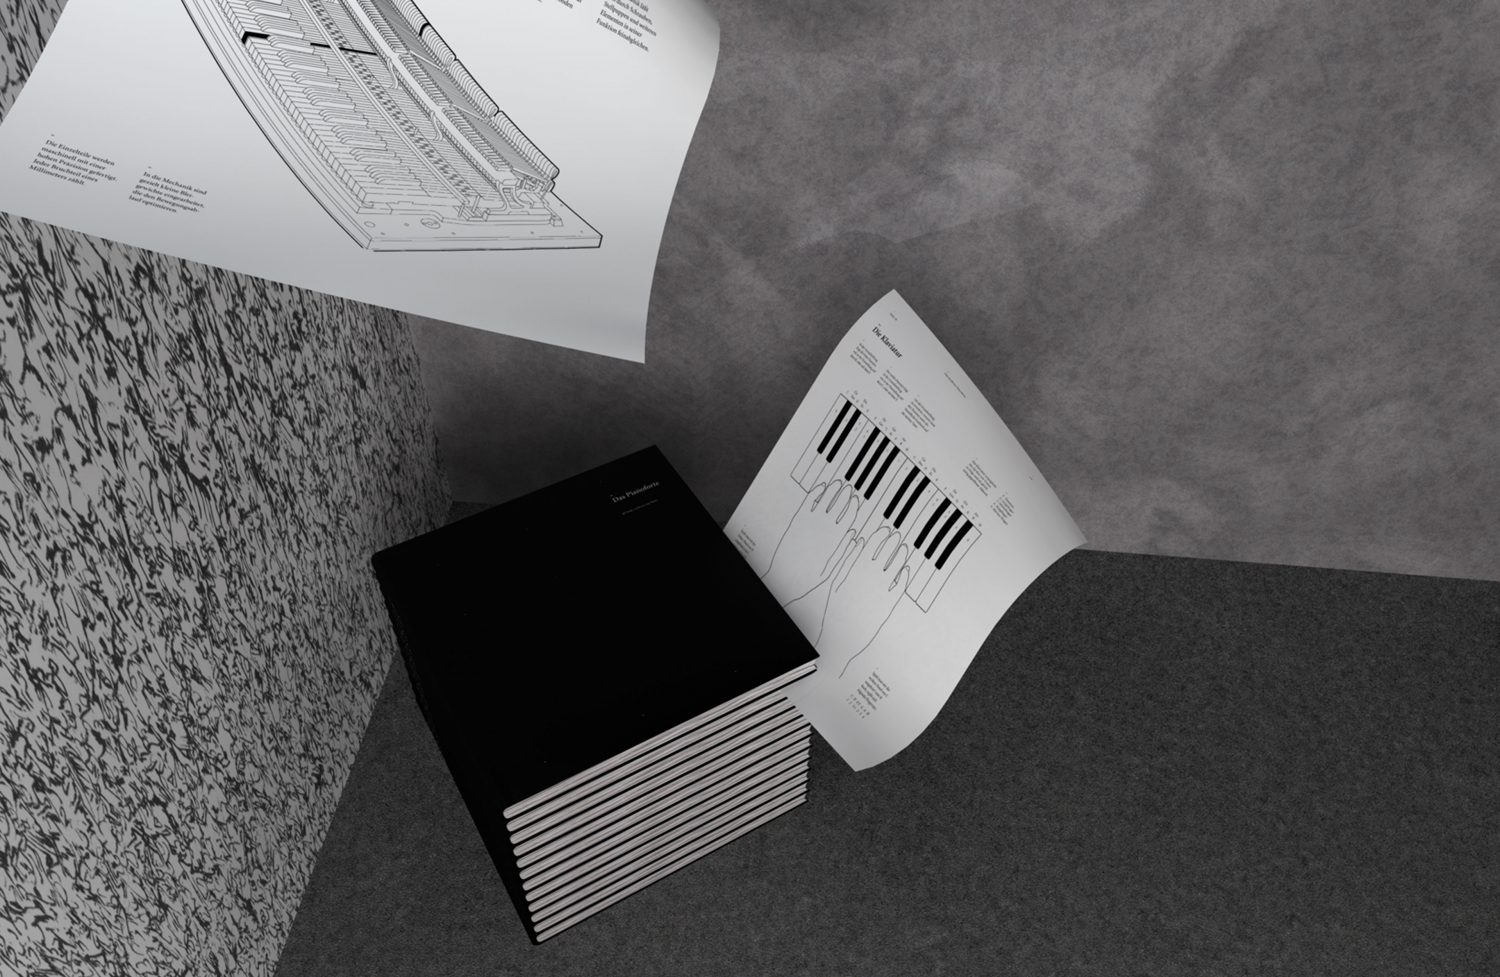 Pianoforte — 88 pages in black and white